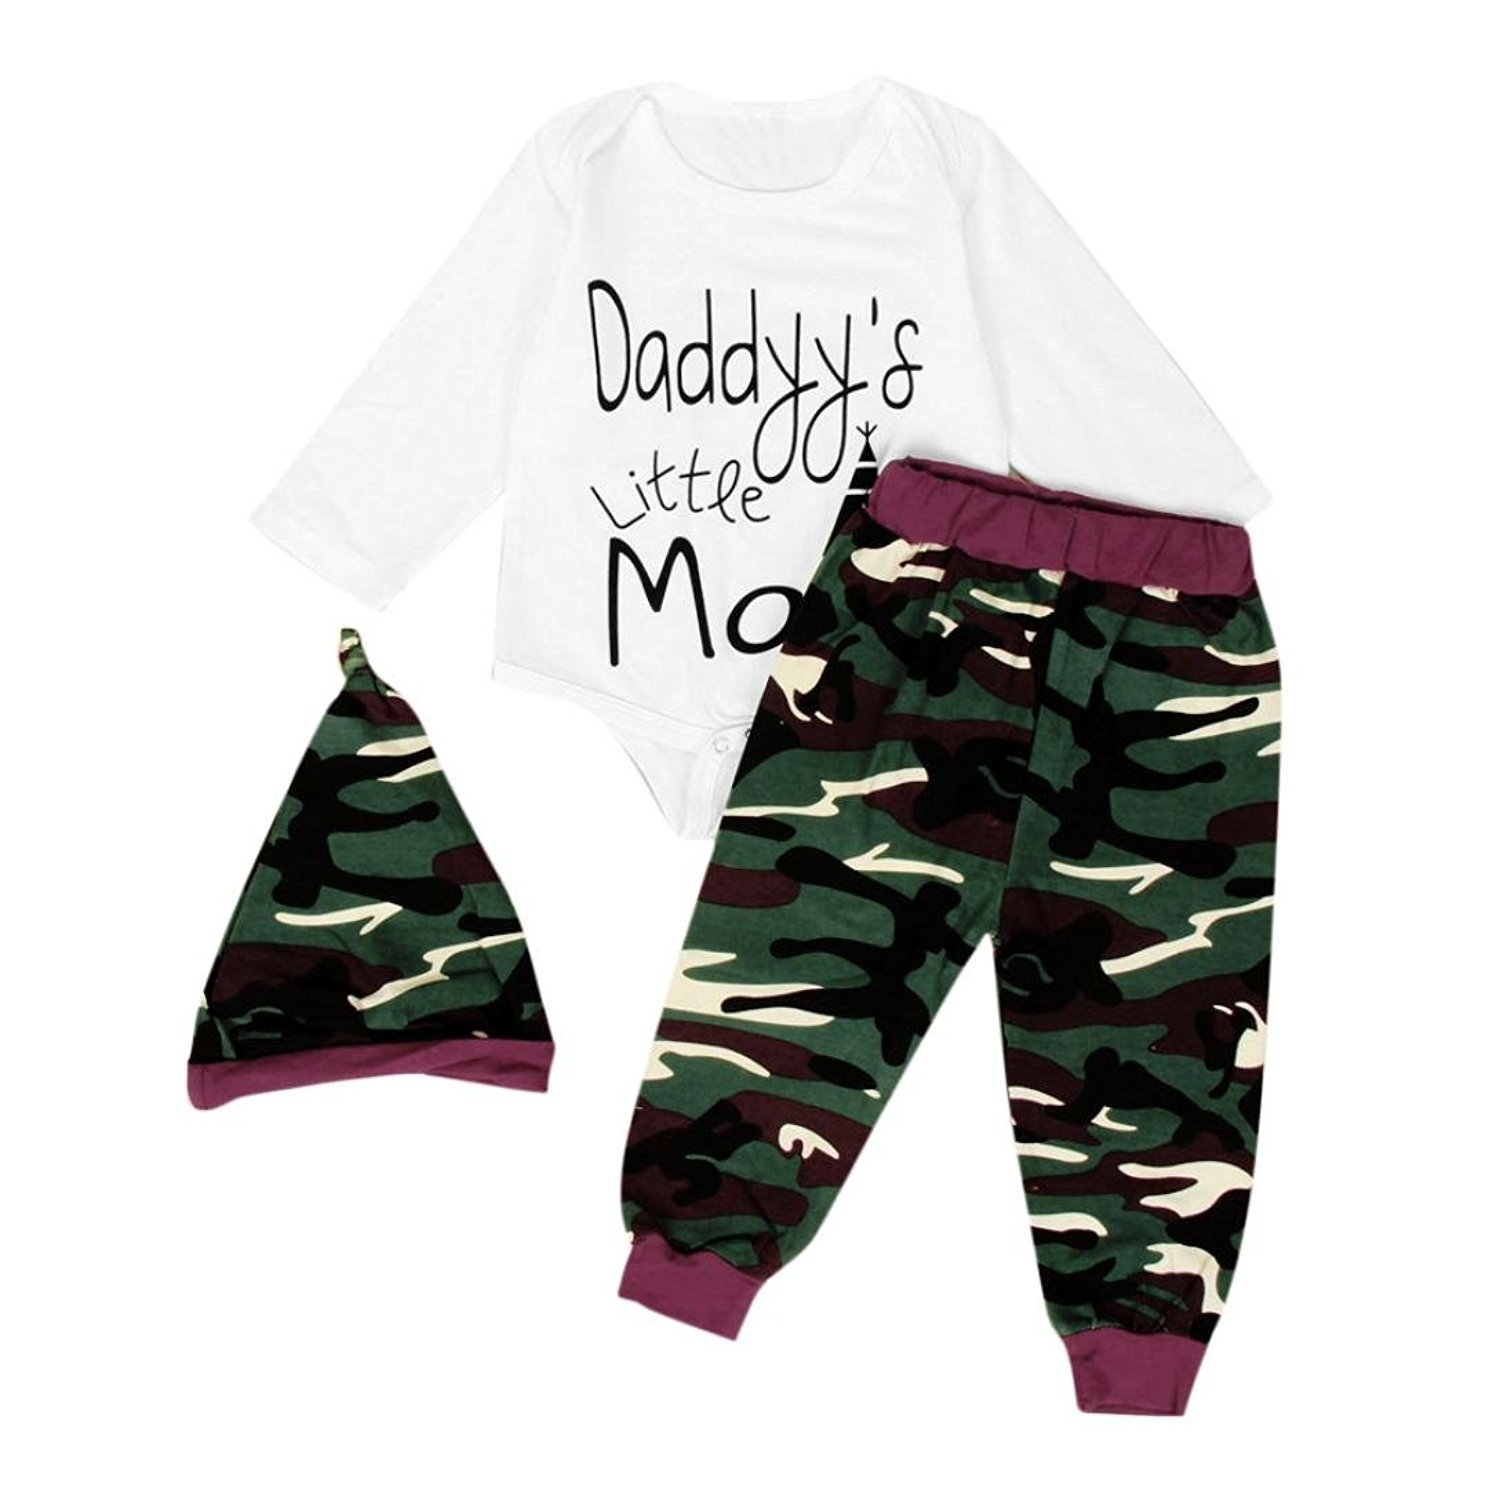 Fulltime(TM) Newborn Baby Boys Letter Romper Camouflage Pants Hat 3PCS Outfits Clothes Sets F-7324